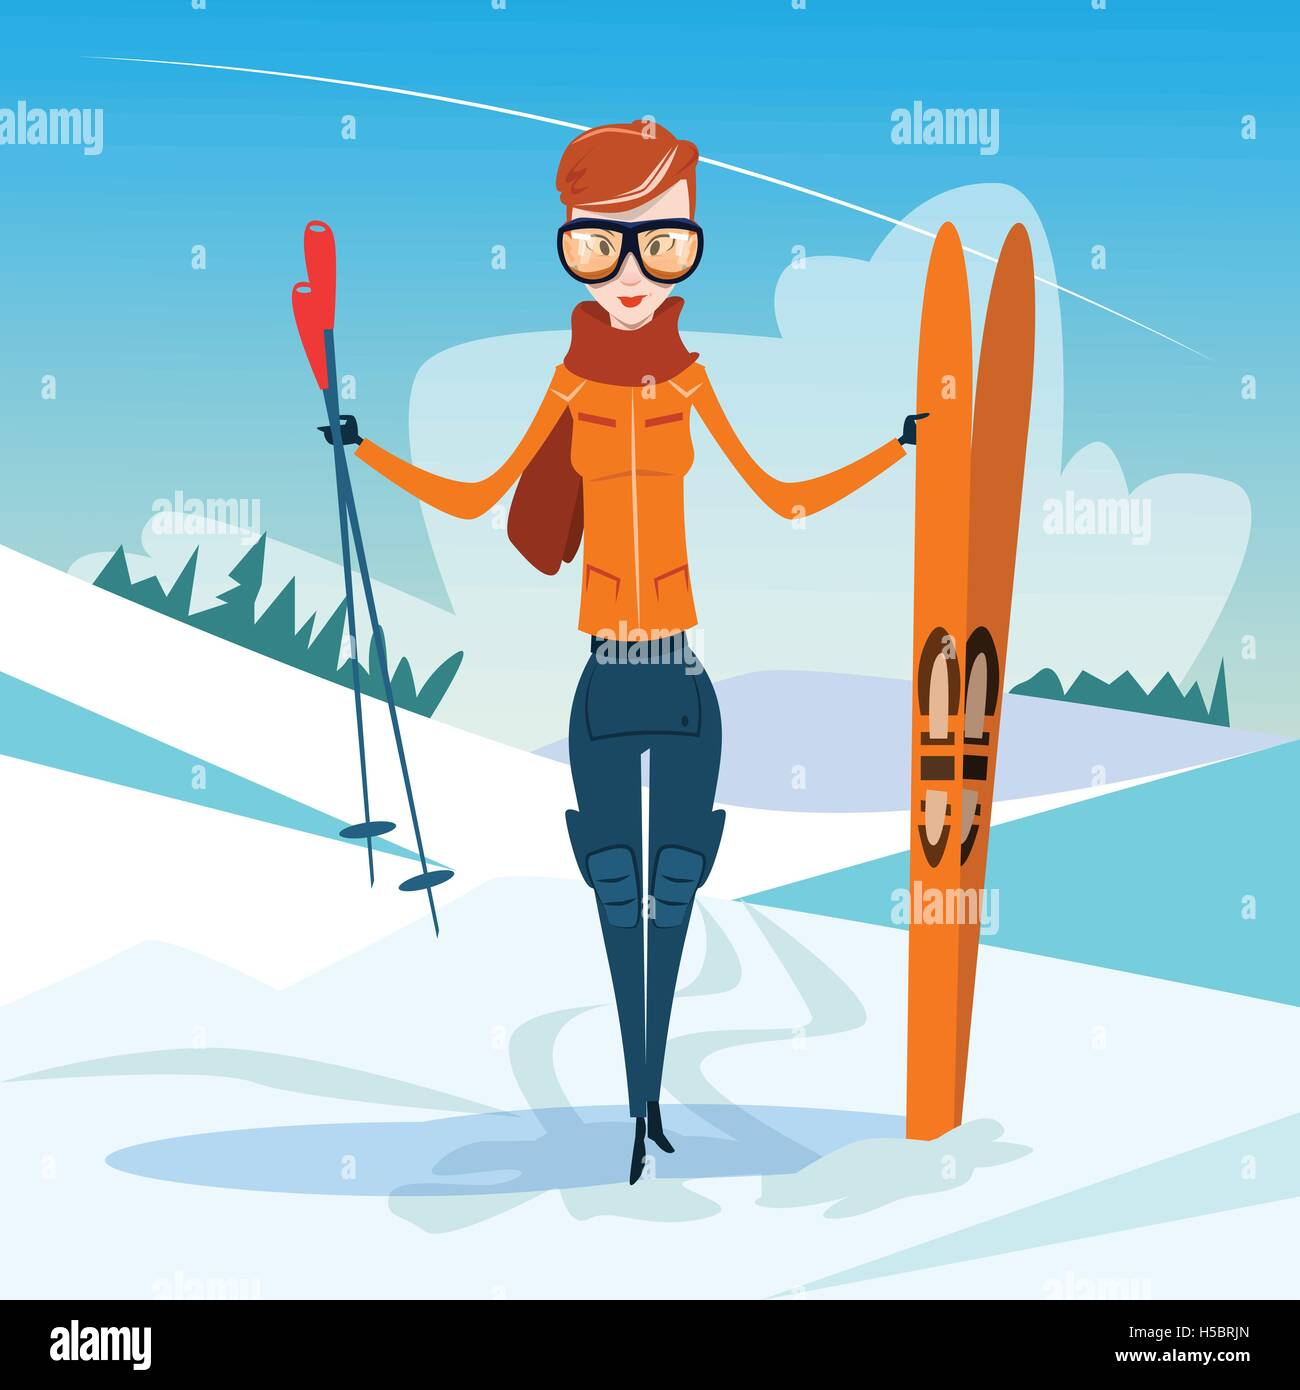 654236e66cc Woman Standing Hold Ski Winter Activity Sport Vacation Snow Mountain Slope  - Stock Vector